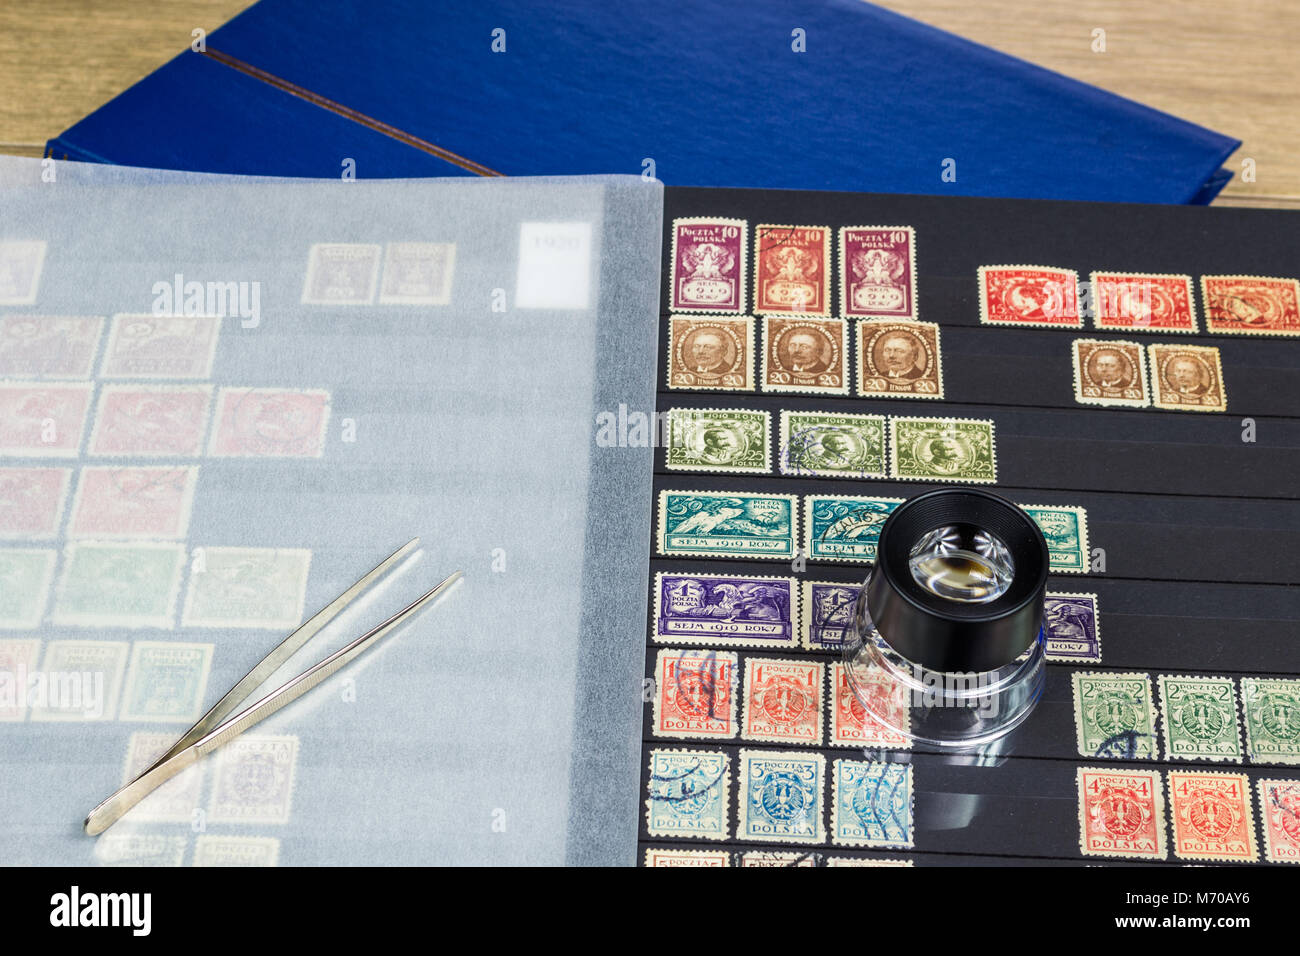 Philatelic collection with postage stamps - Stock Image